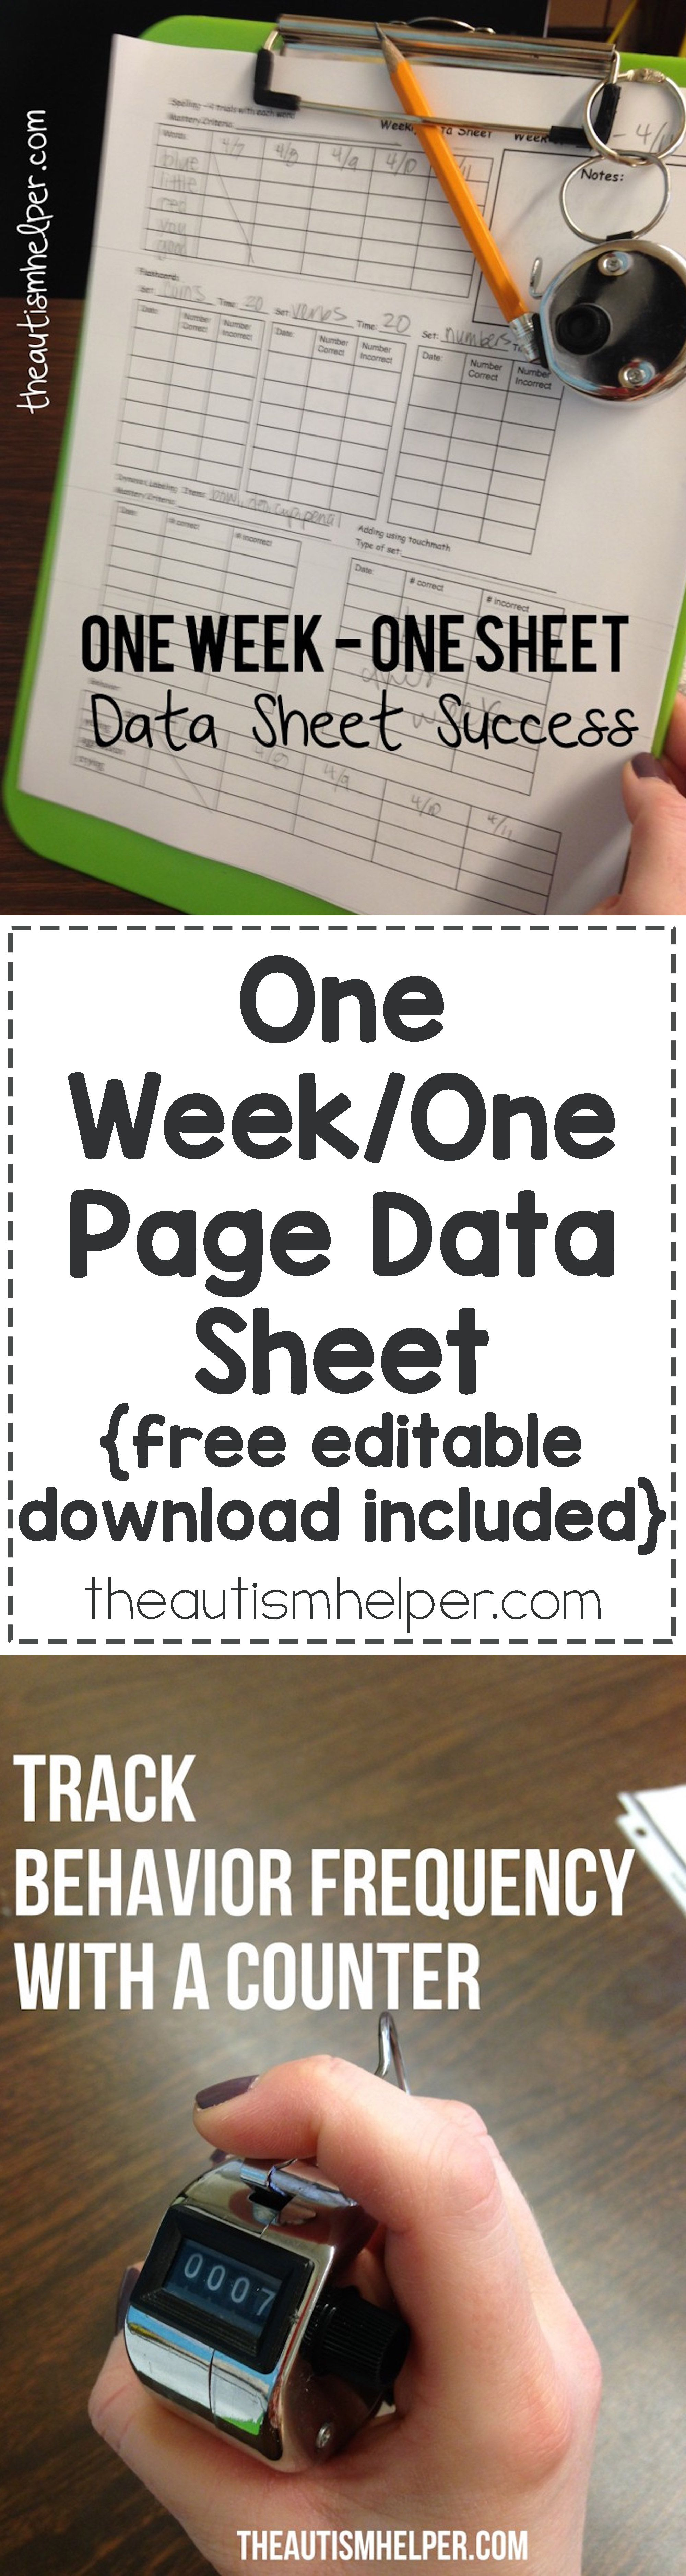 One Week One Page Data Sheet Free Editable Download